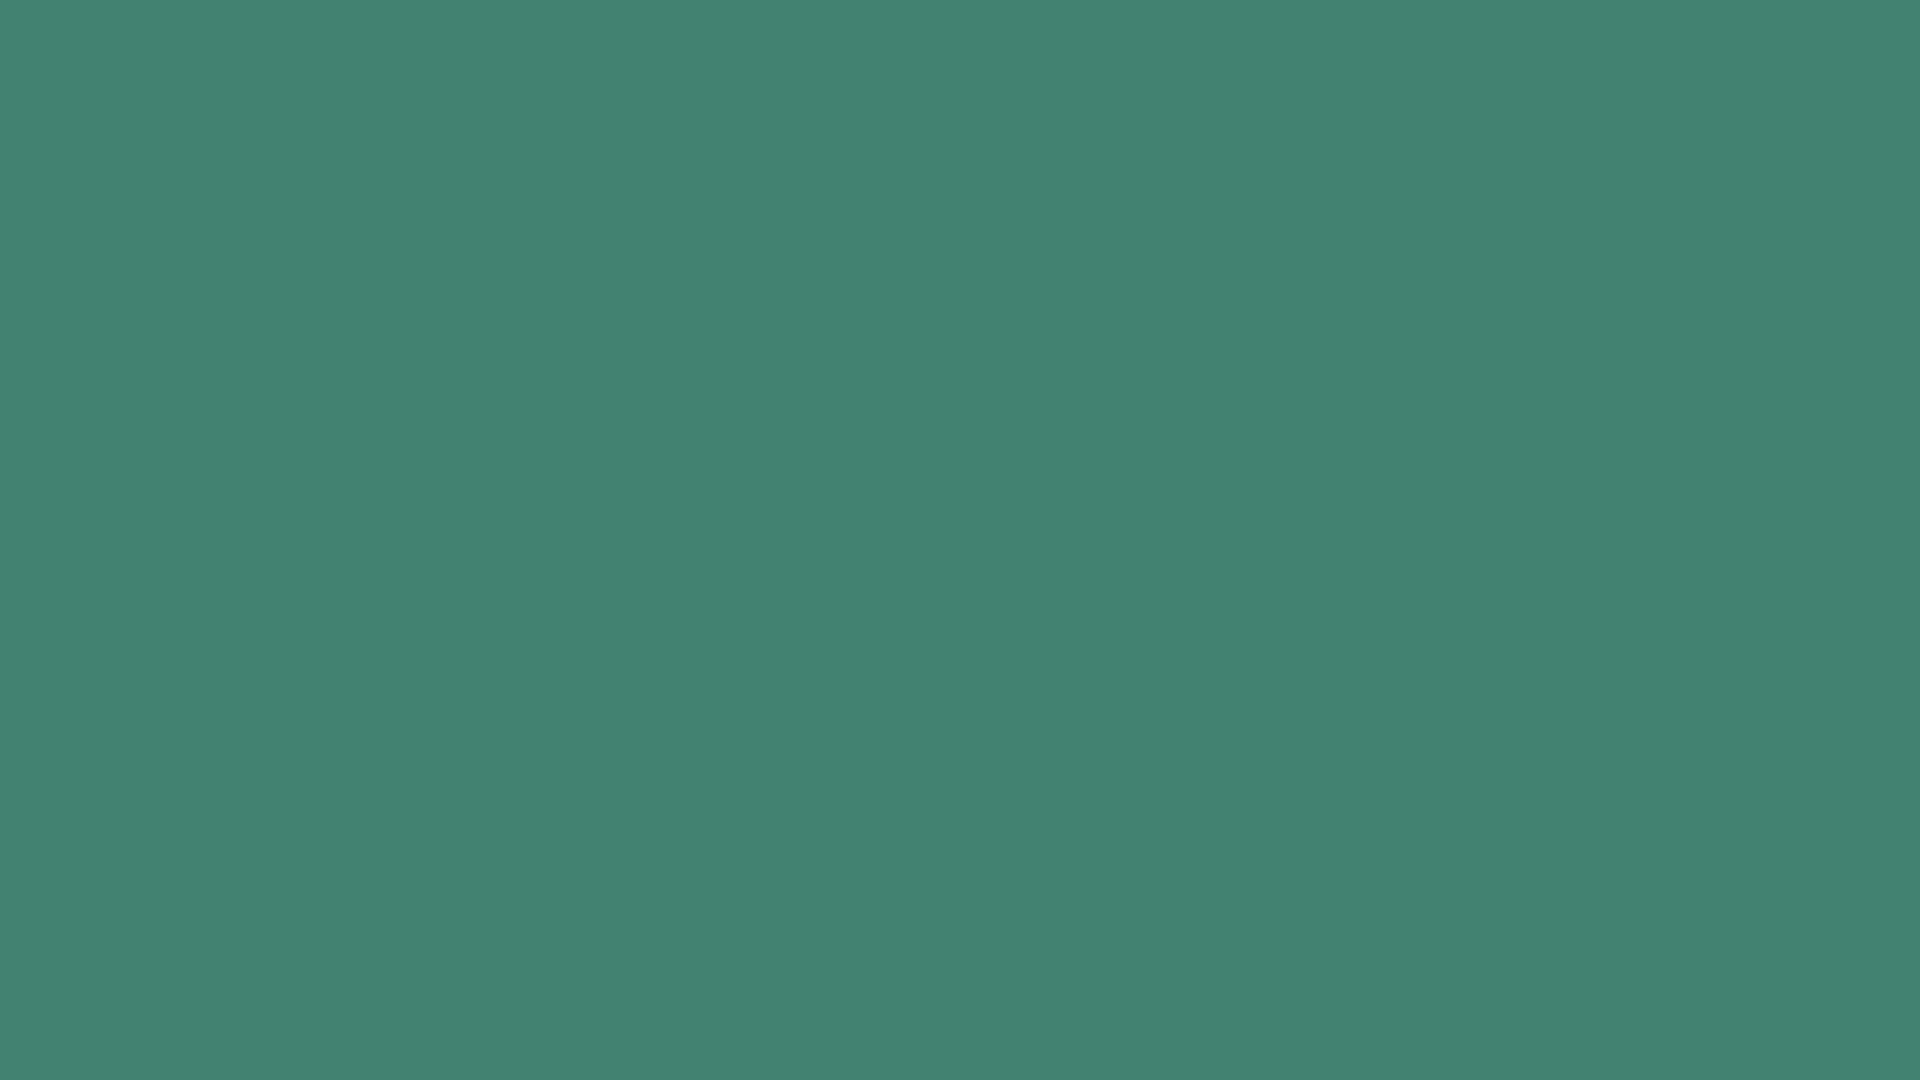 1920x1080 Viridian Solid Color Background